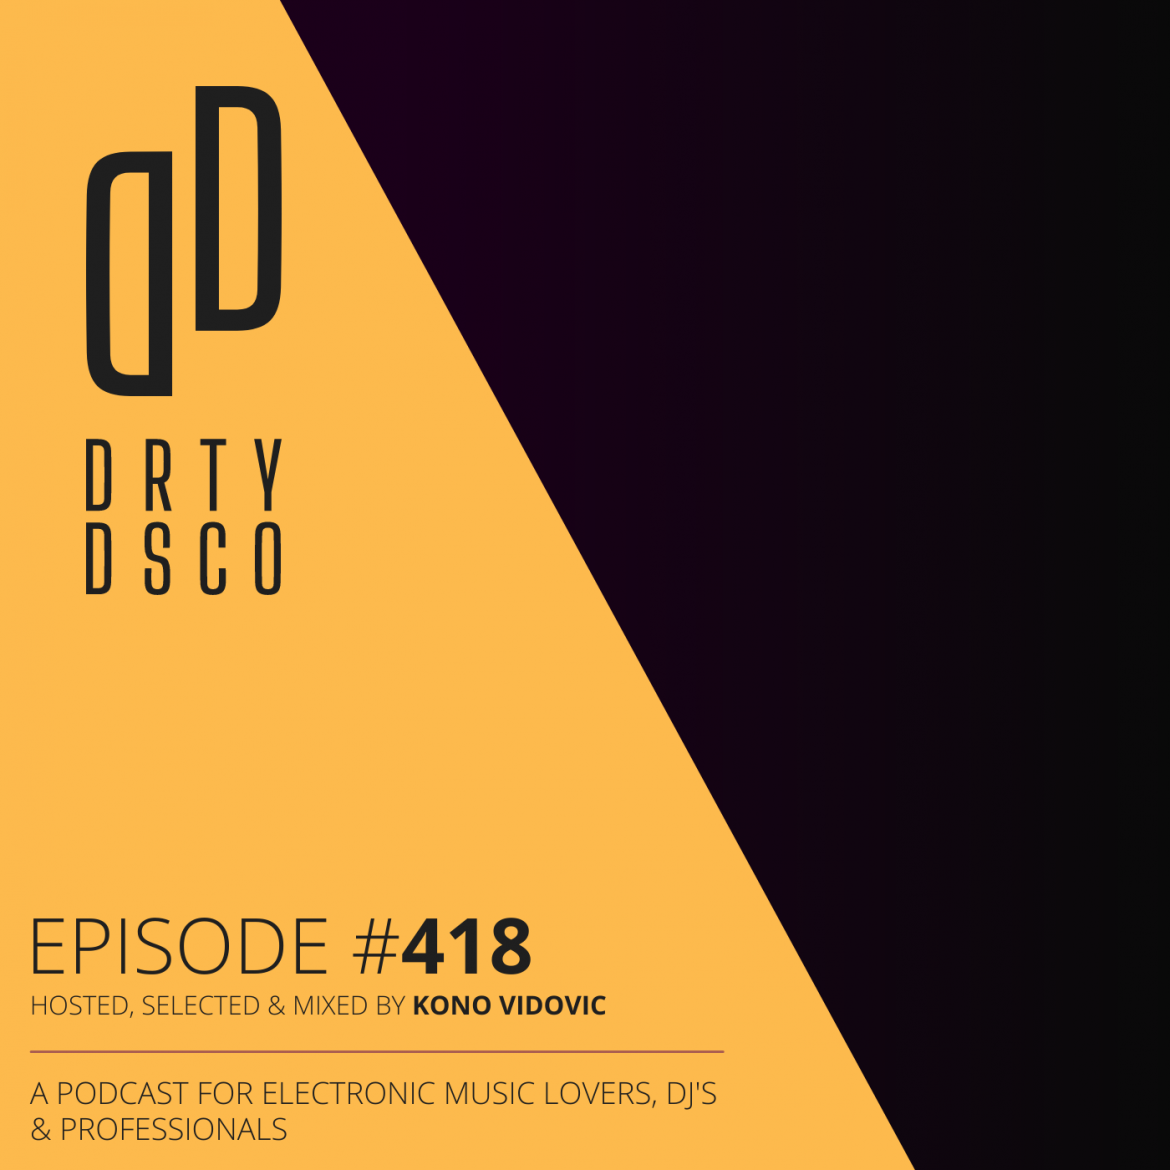 Music To Groove - Dirty Disco 418